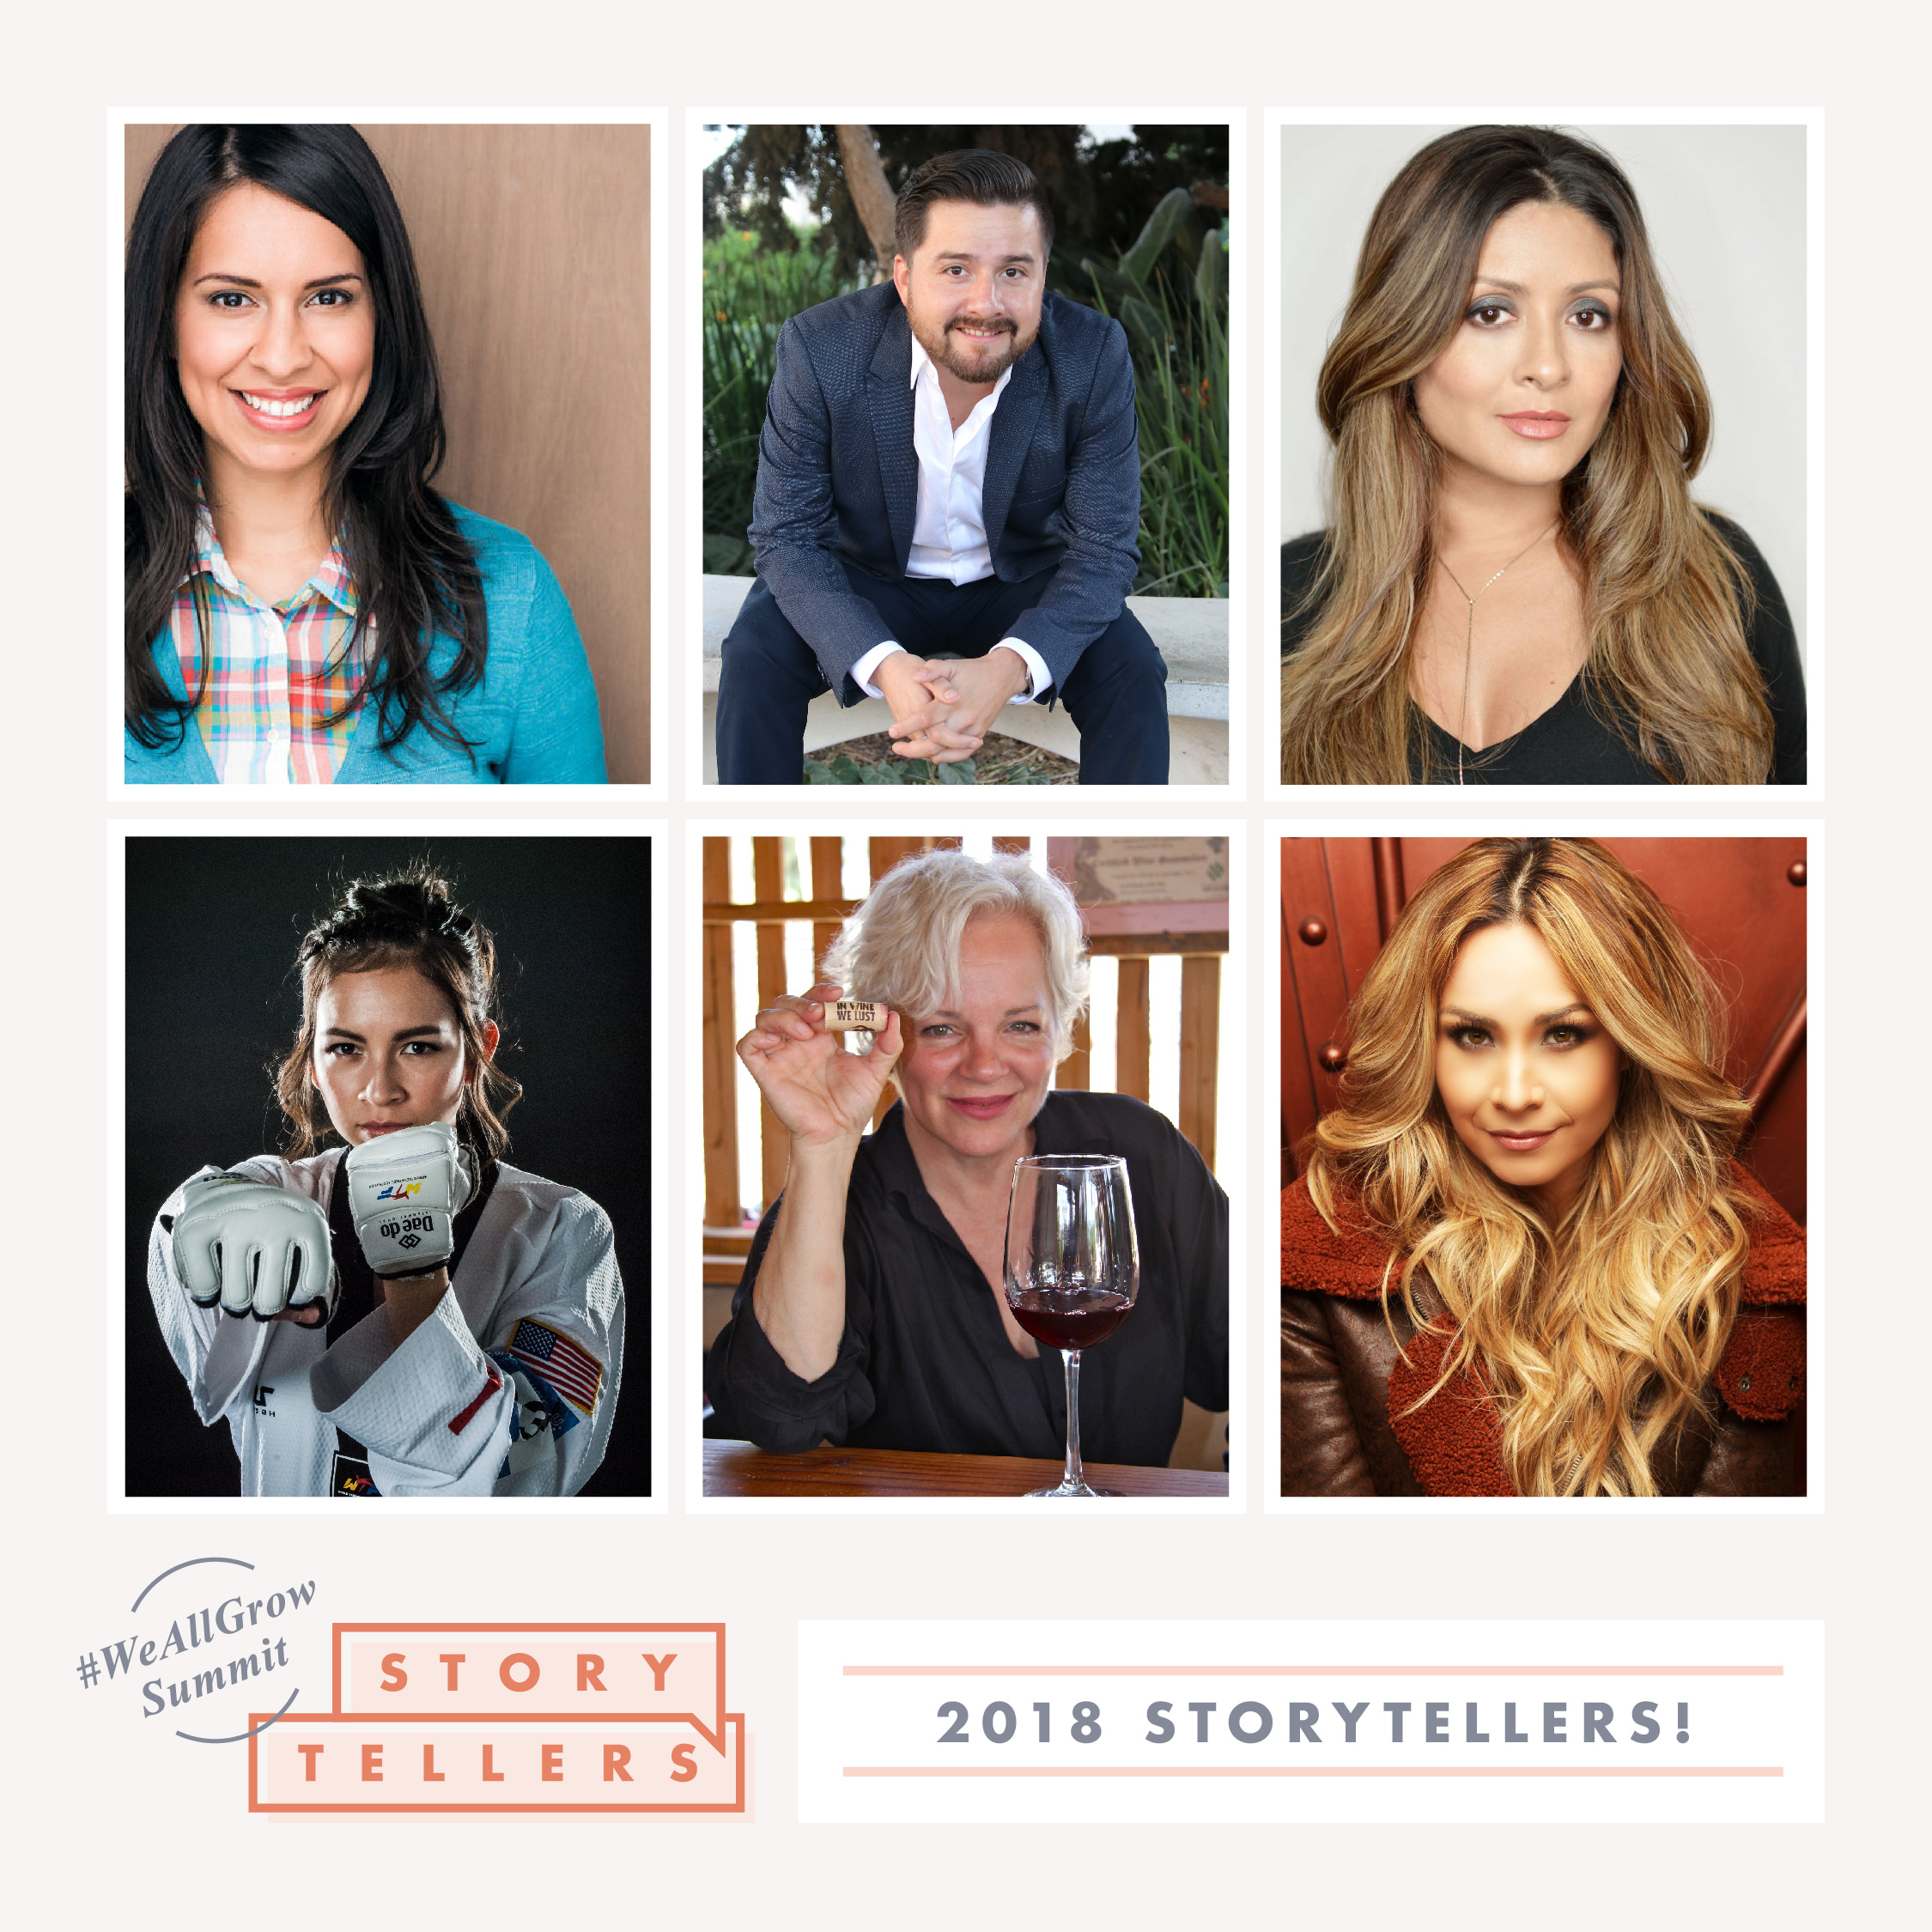 #WeAllGrow Summit 2018 Storytellers